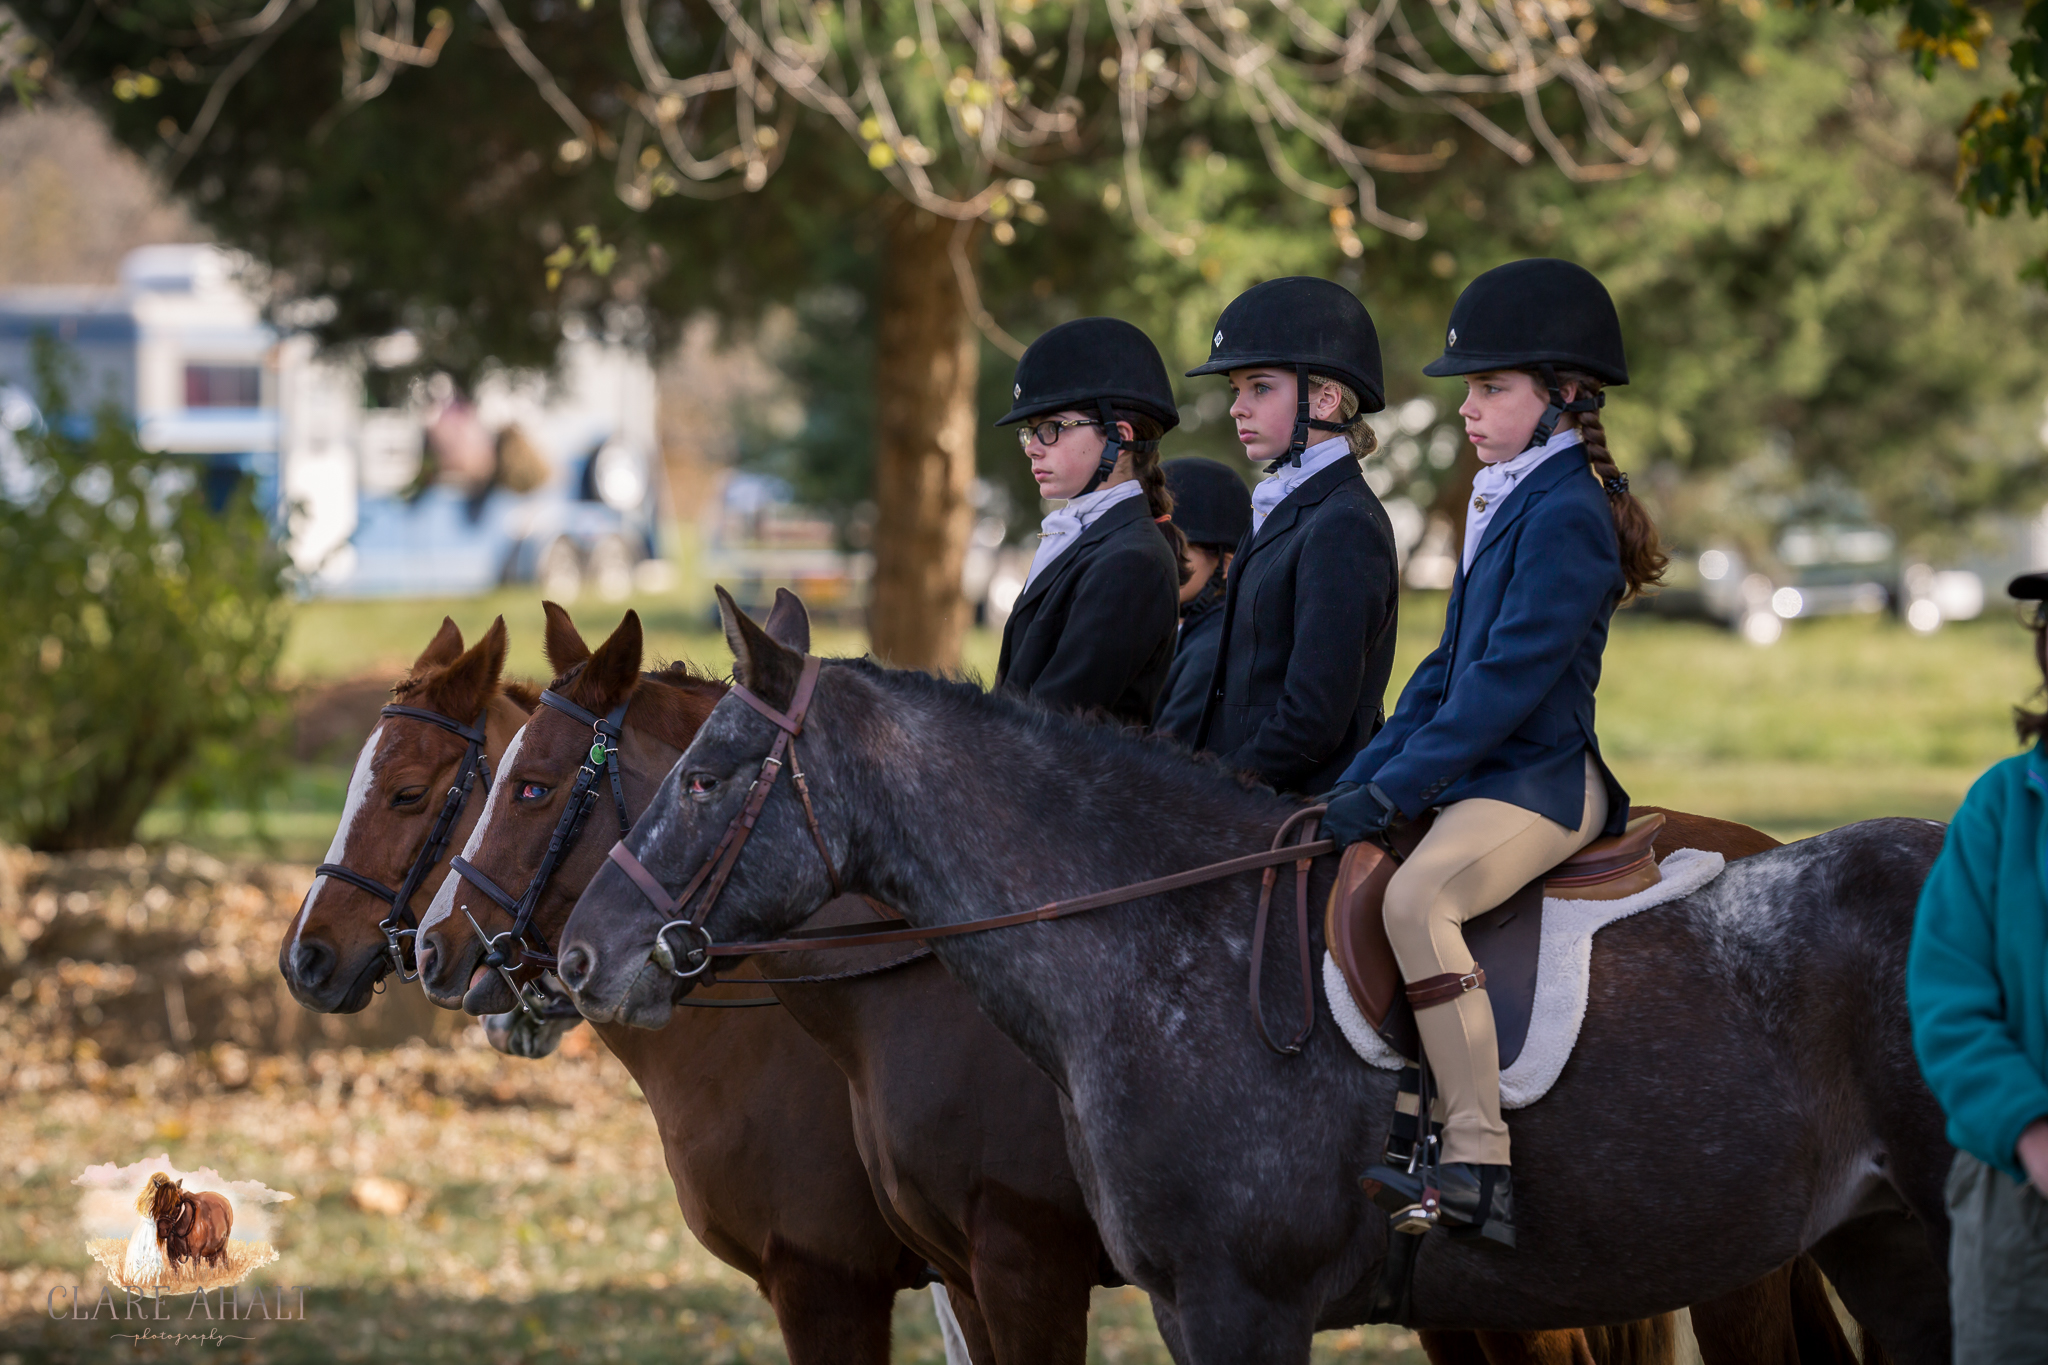 Best_Equestrian_Photographer_Maryland_equine_photographer_northern_virginia_equestrian_Photographer-58.jpg